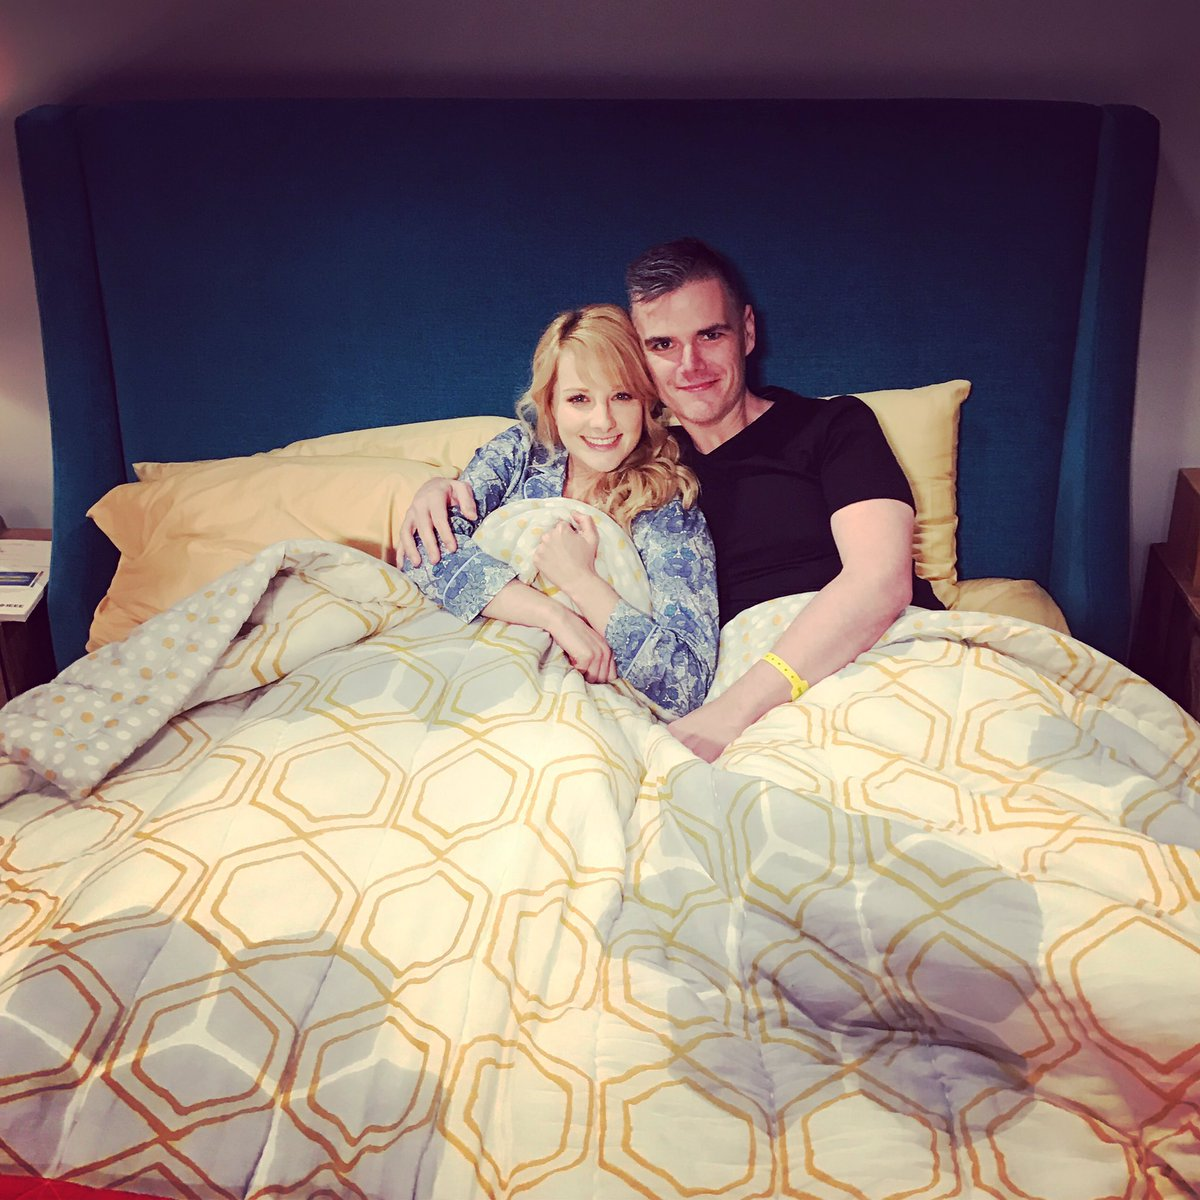 Not to brag about my intimate conquests-but thrilled to have bed the scoop master @MichaelAusiello #tapenightdelight https://t.co/e02kEPeU59